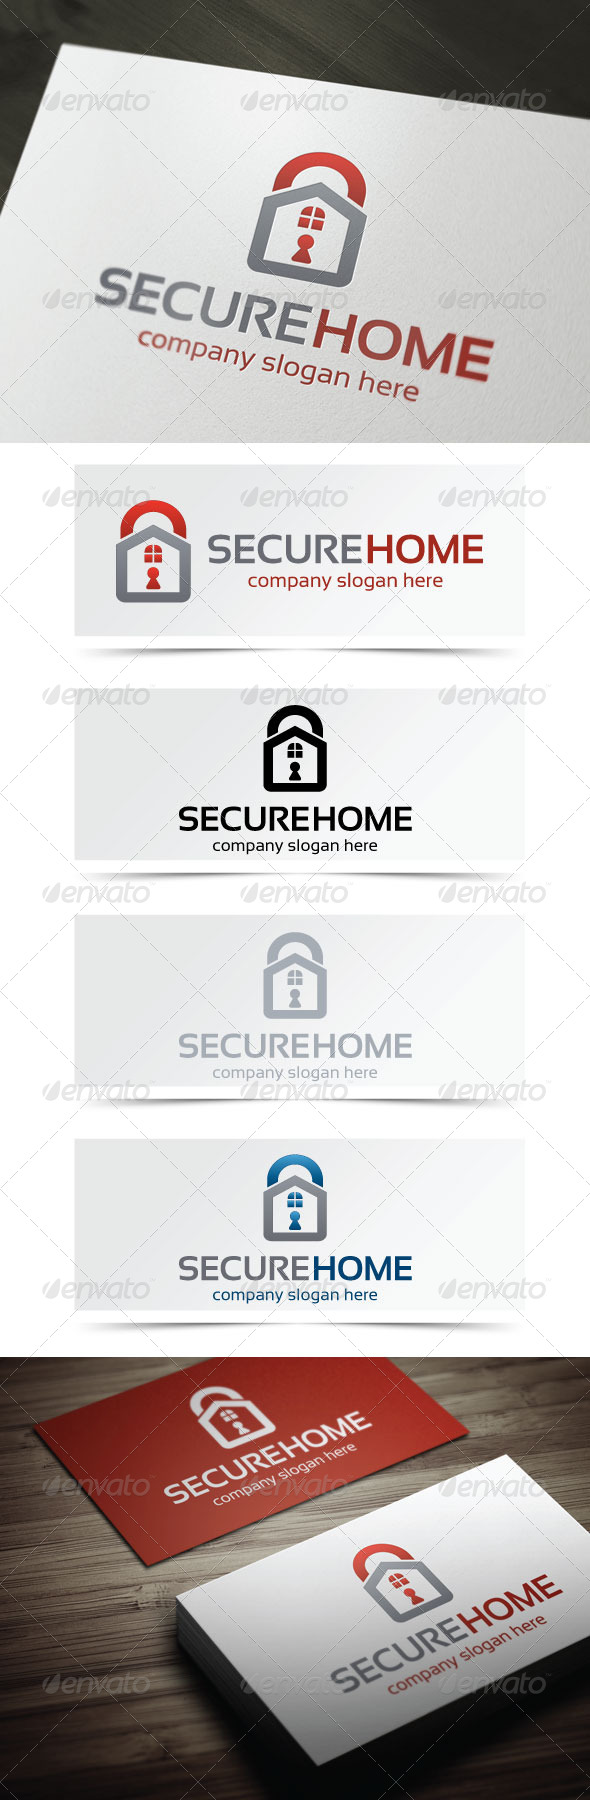 GraphicRiver Secure Home 4949362